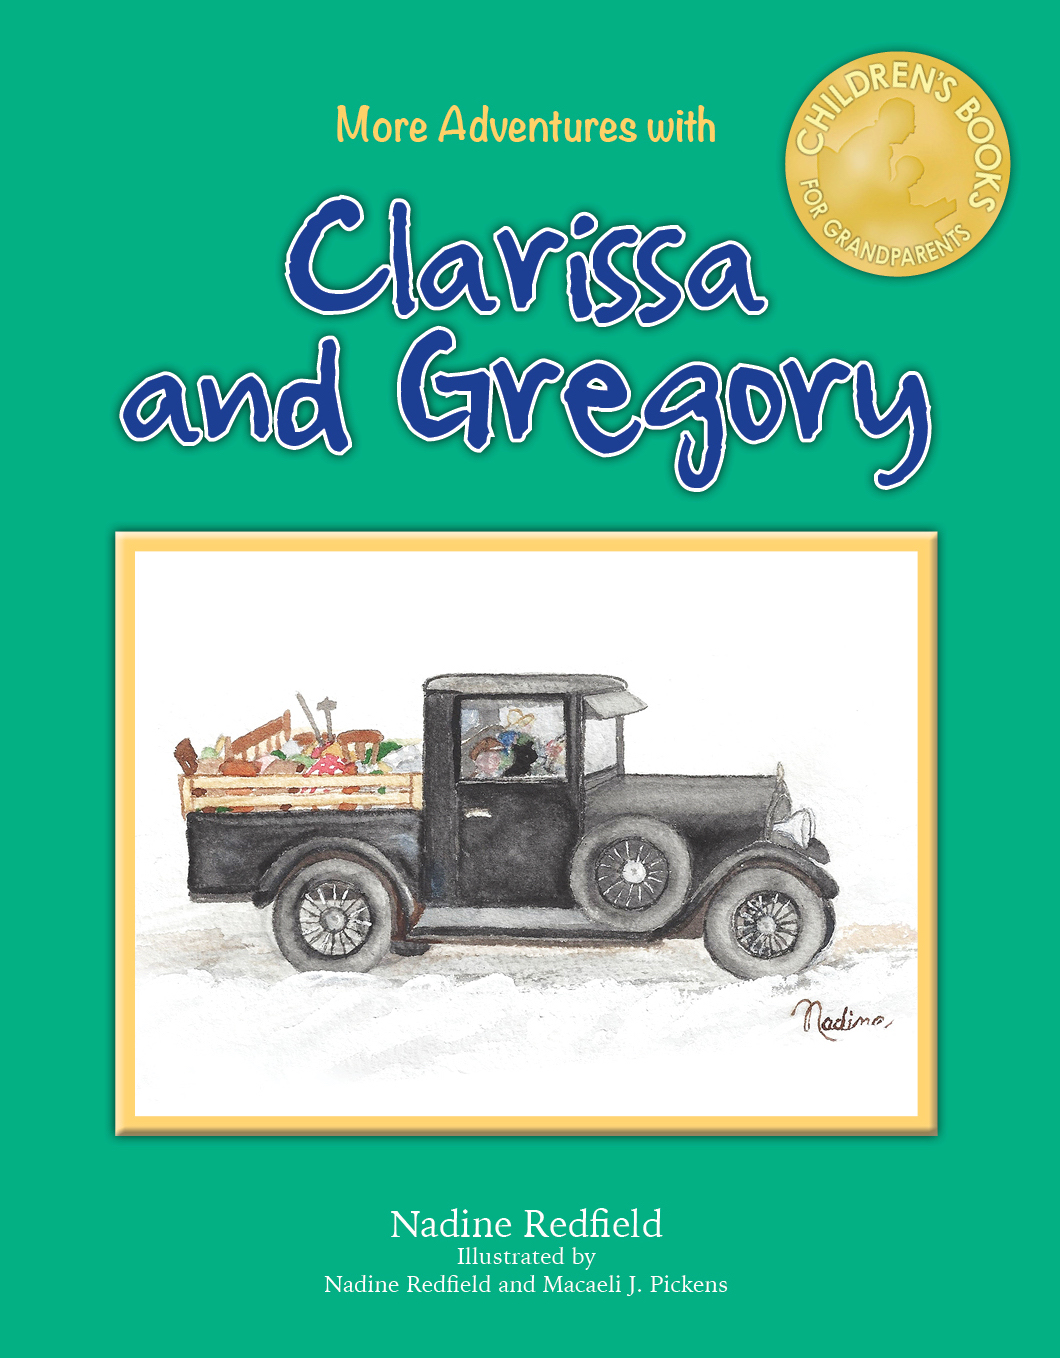 Clarissa&Gregory2